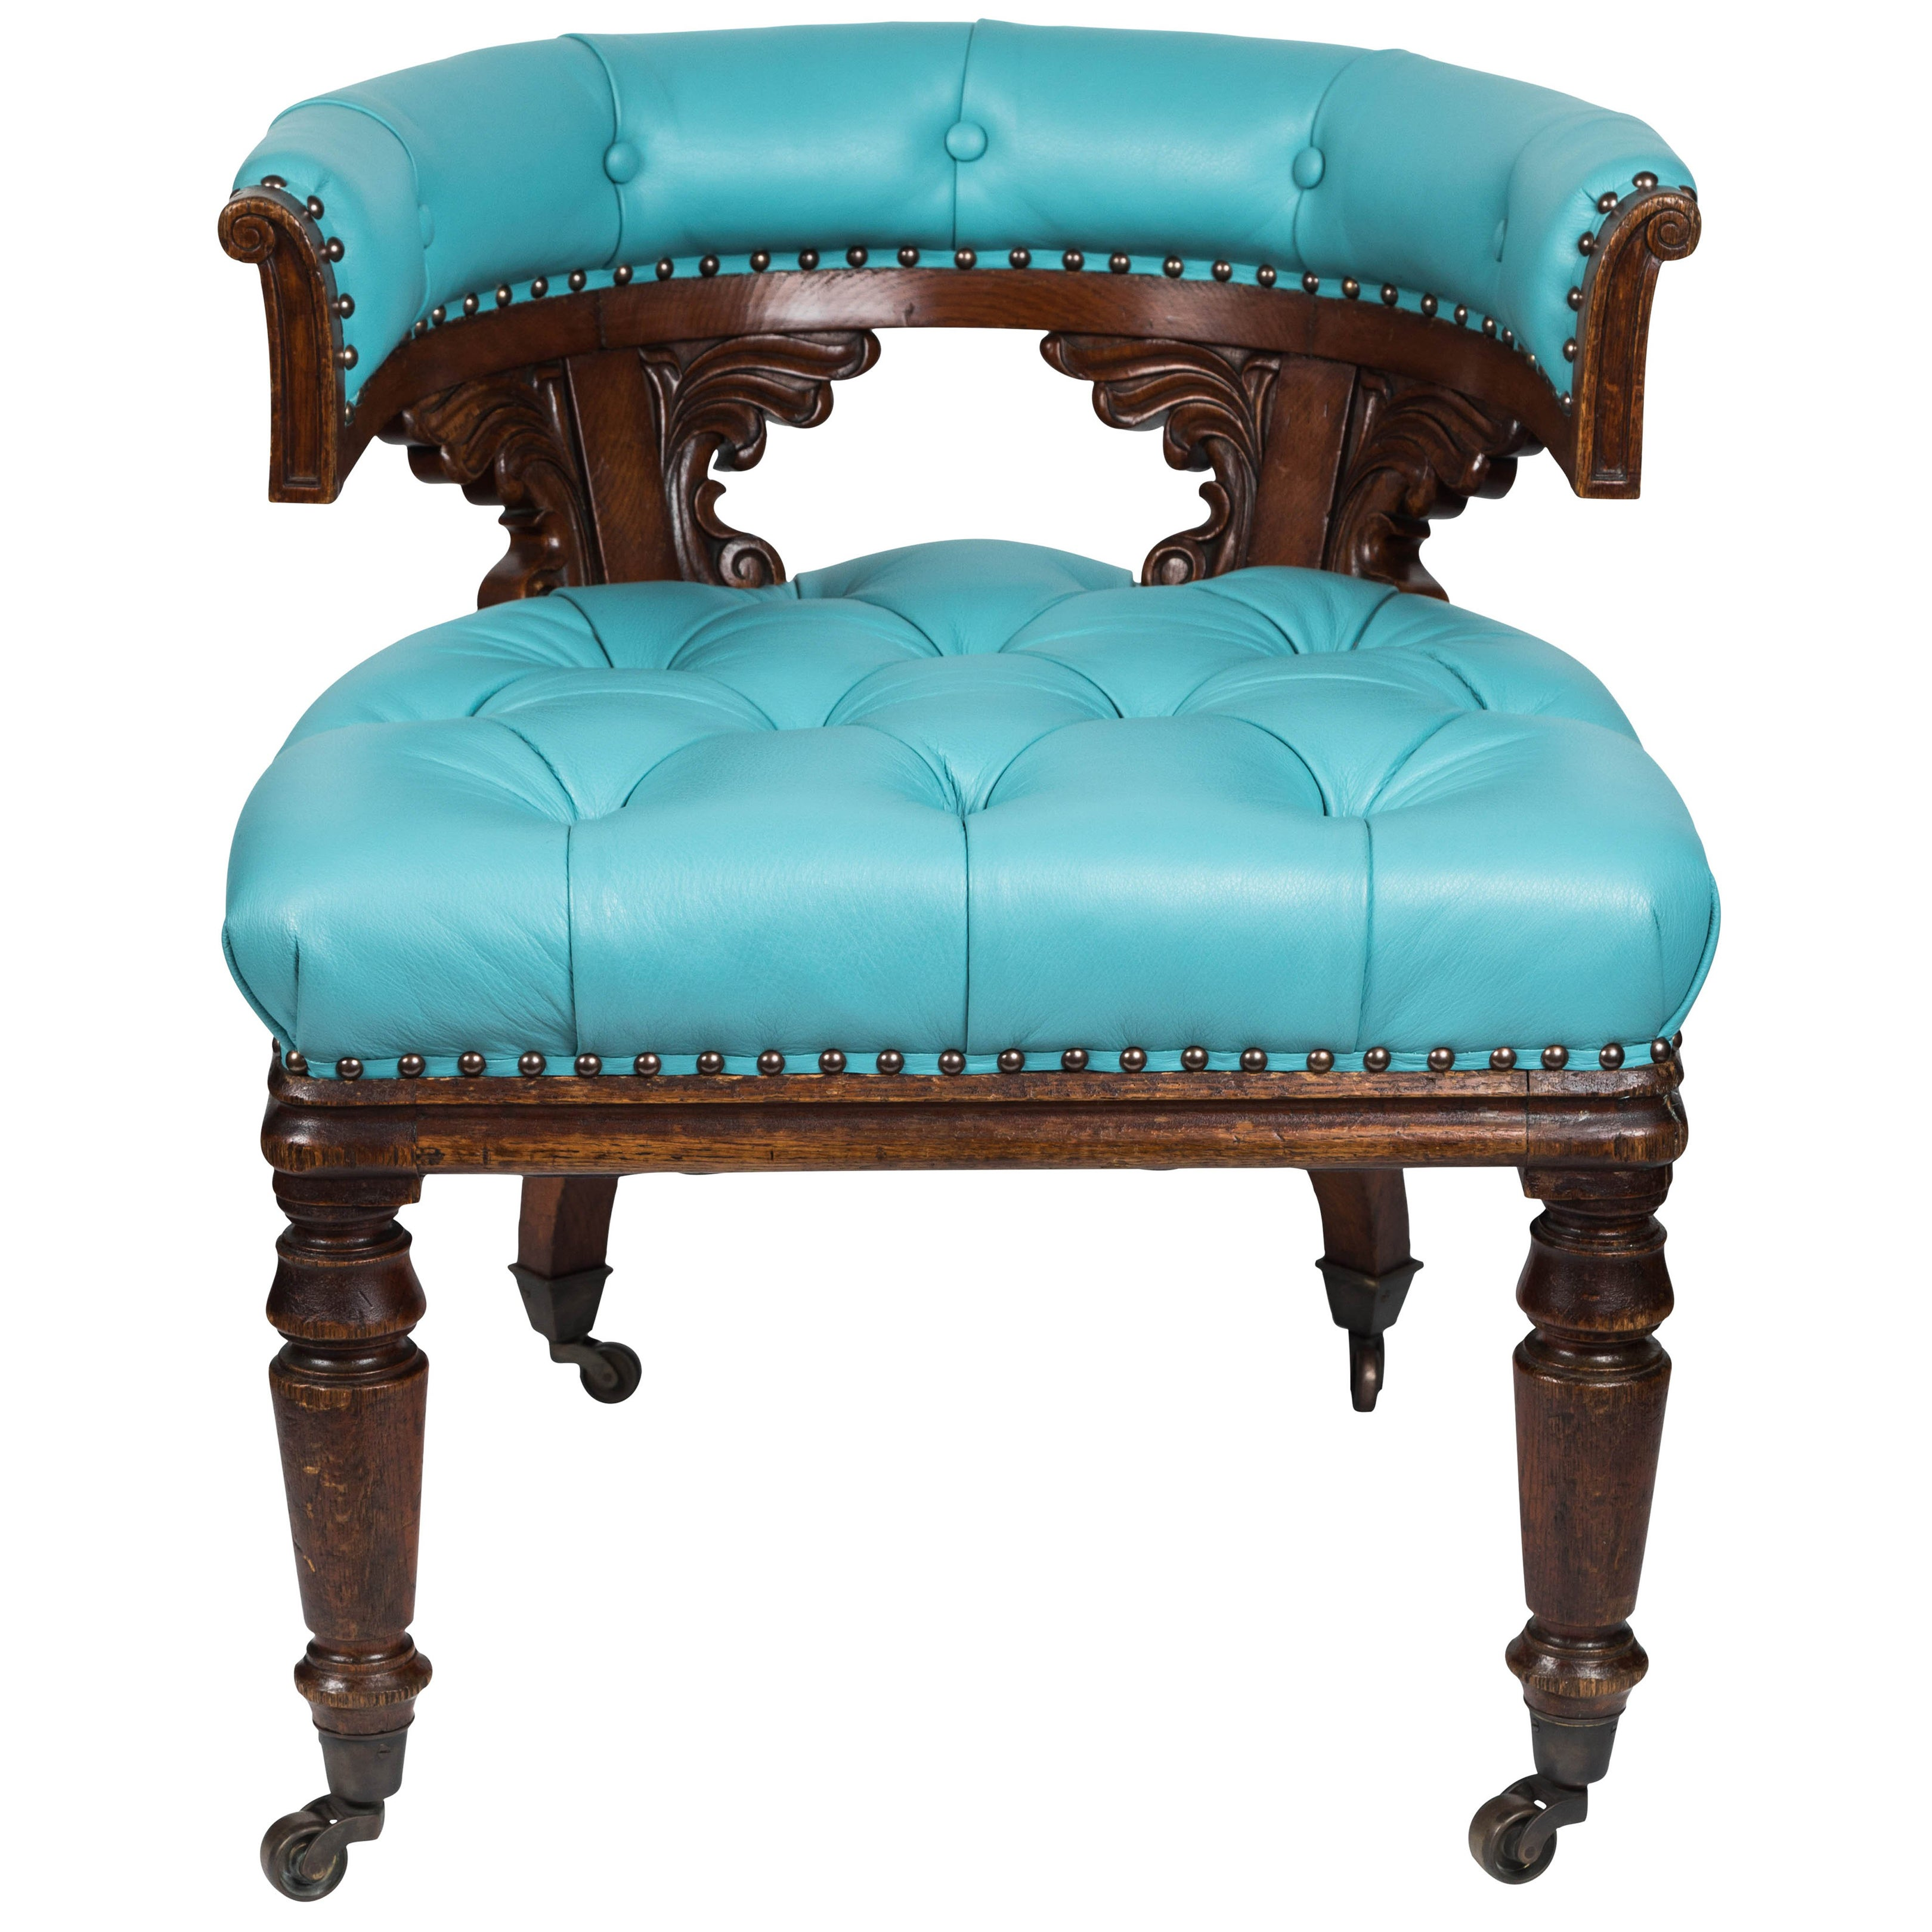 Antique William IV Chair In Mahogany And Turquoise Leather For Sale At  1stdibs